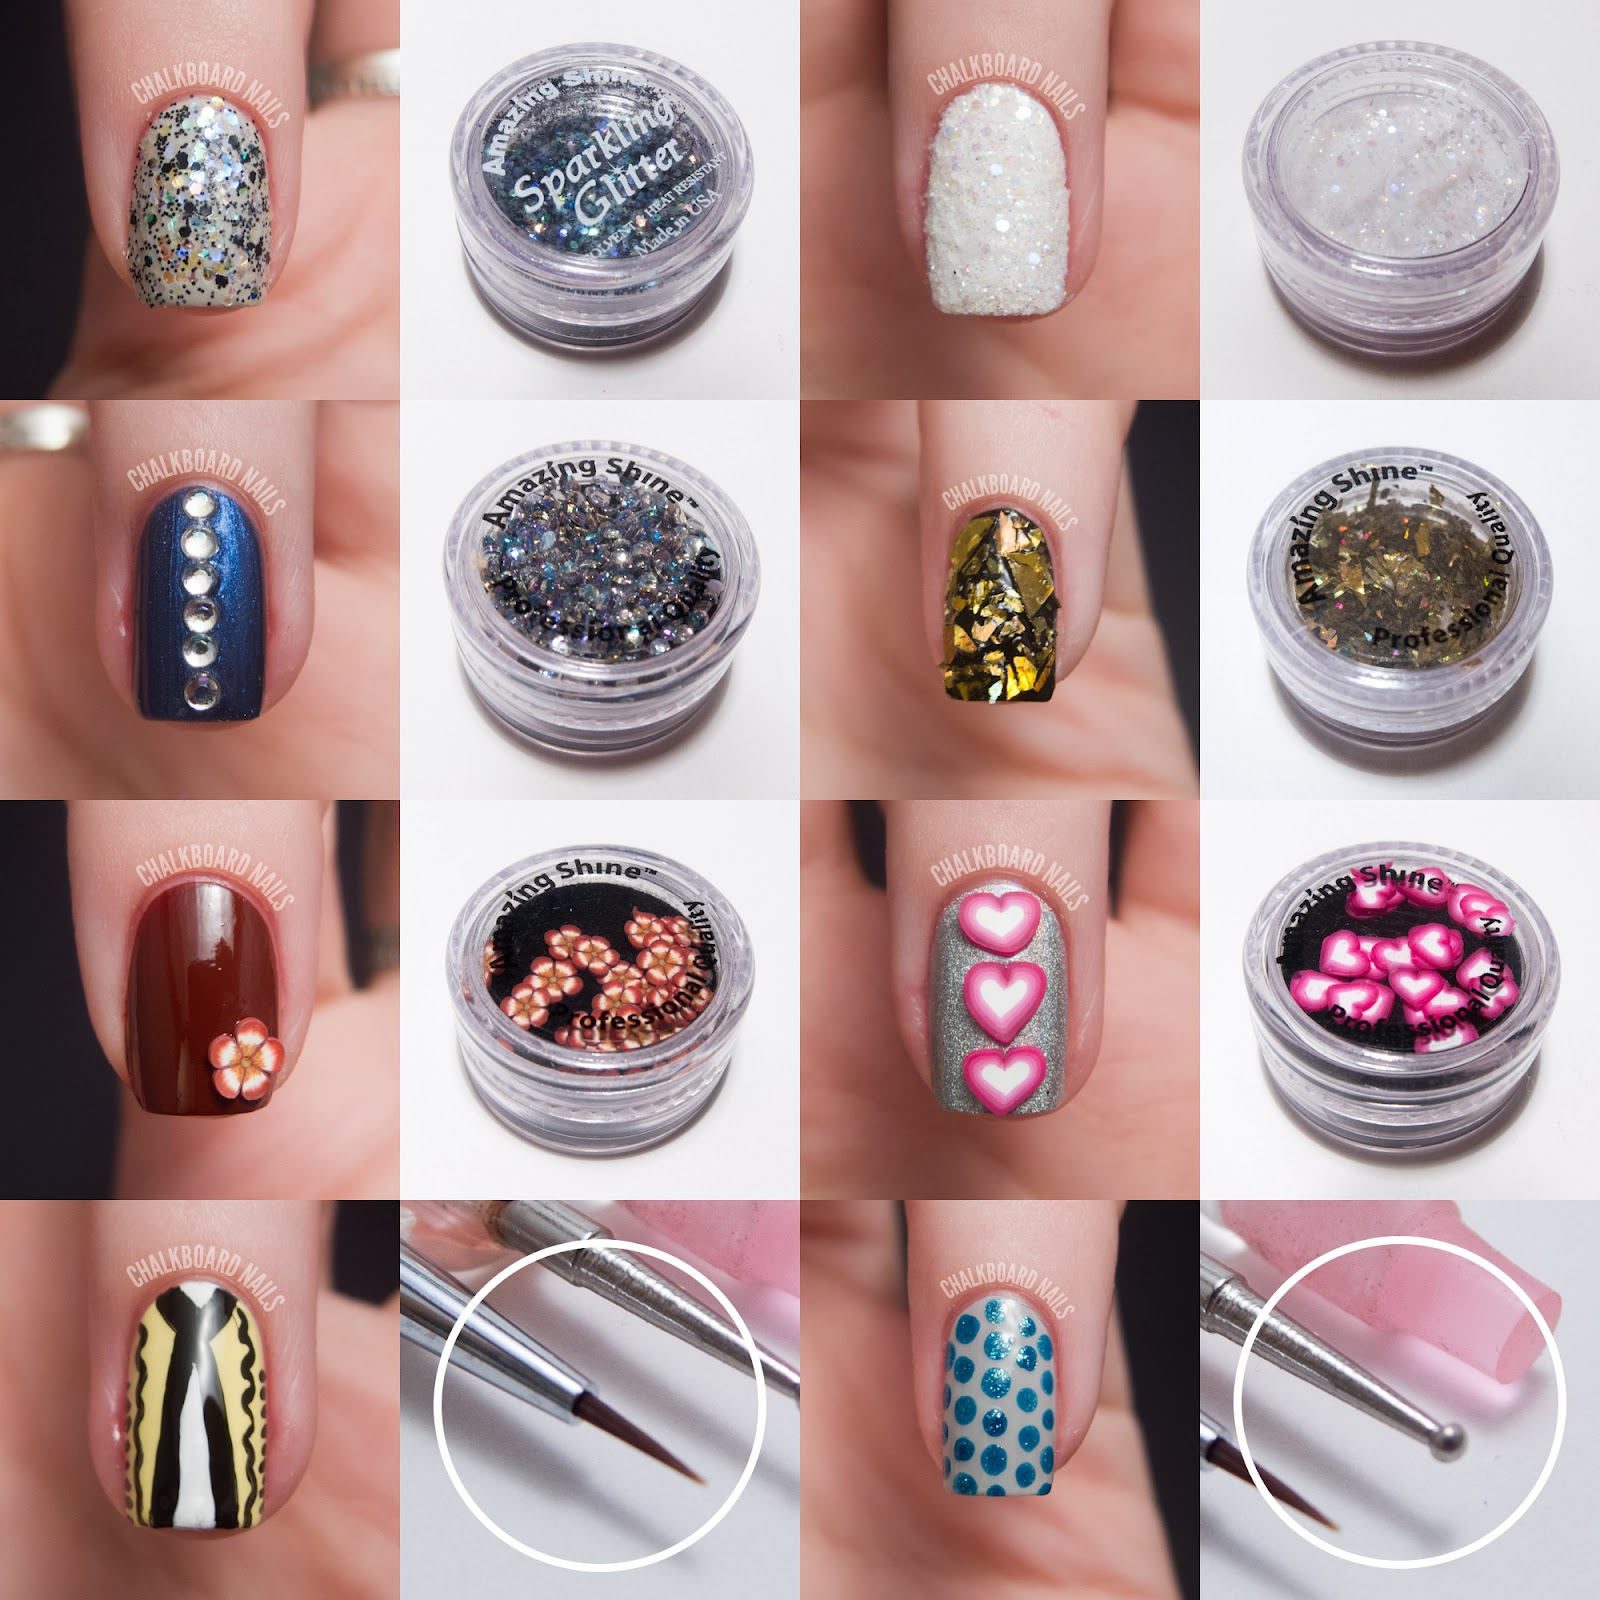 Pics Of Nail Art: Amazing Shine Nail Art Kit Review